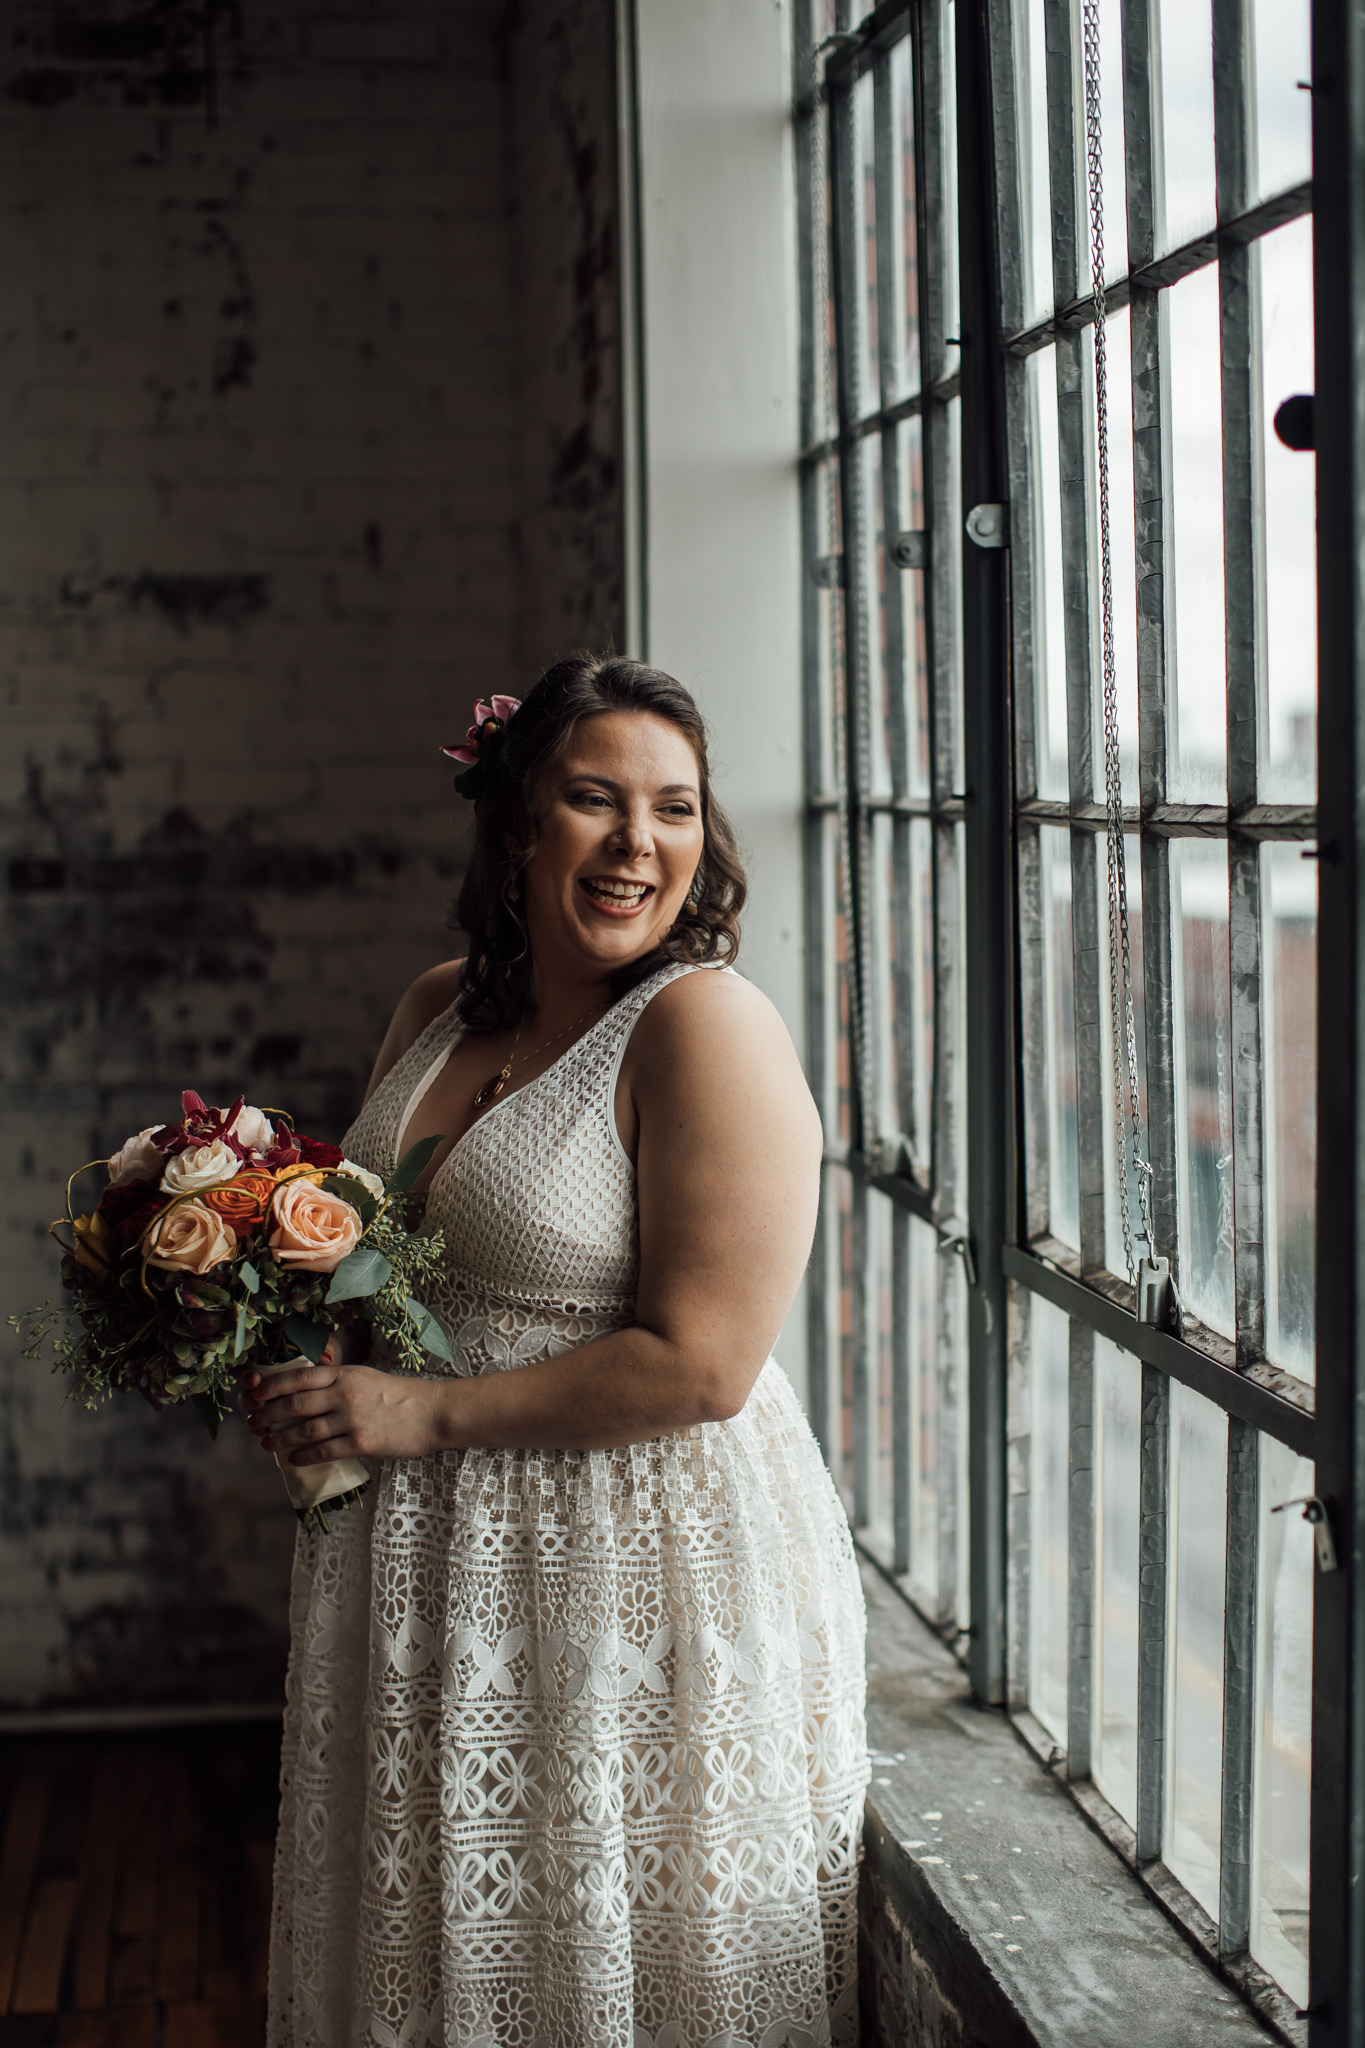 memphis-wedding-photographer-409-s-main-street-memphis-wedding-venue-cassie-cook-photography-susan-cooper-78.jpg